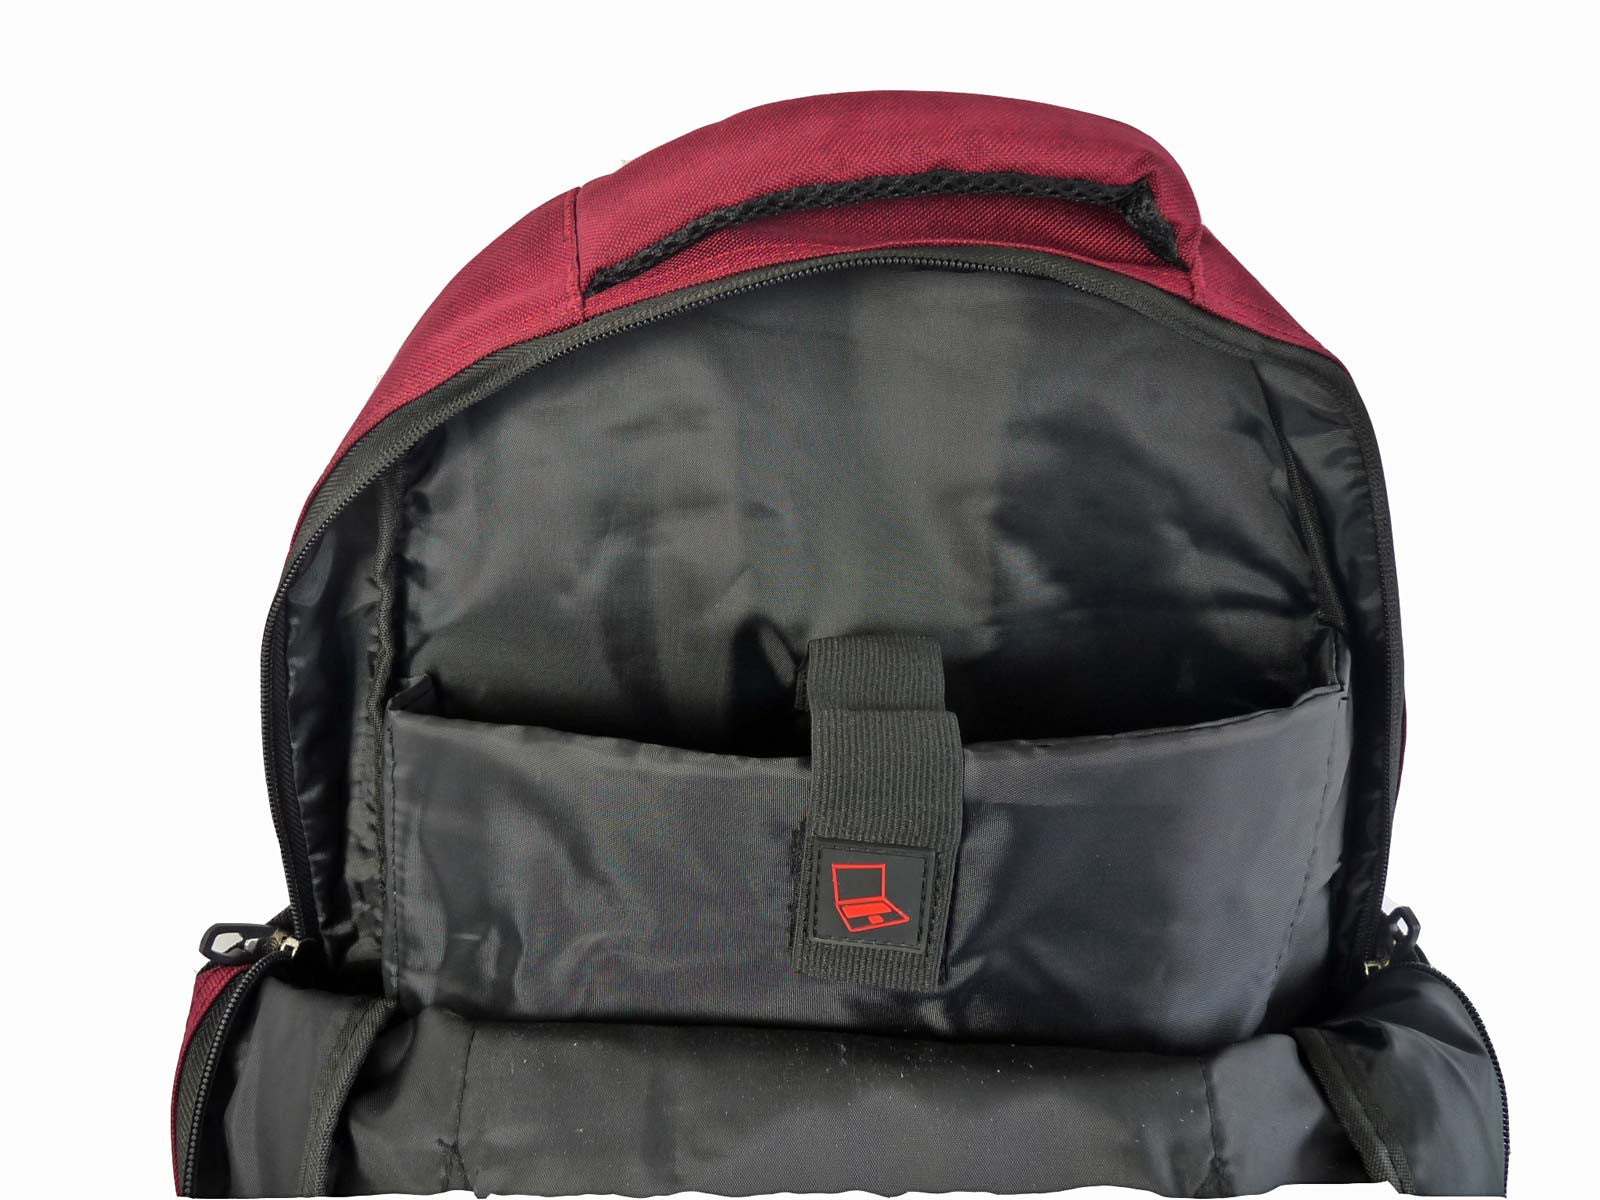 Laptop Macbook Backpack Rucksack Bag RL43Bu Inside View